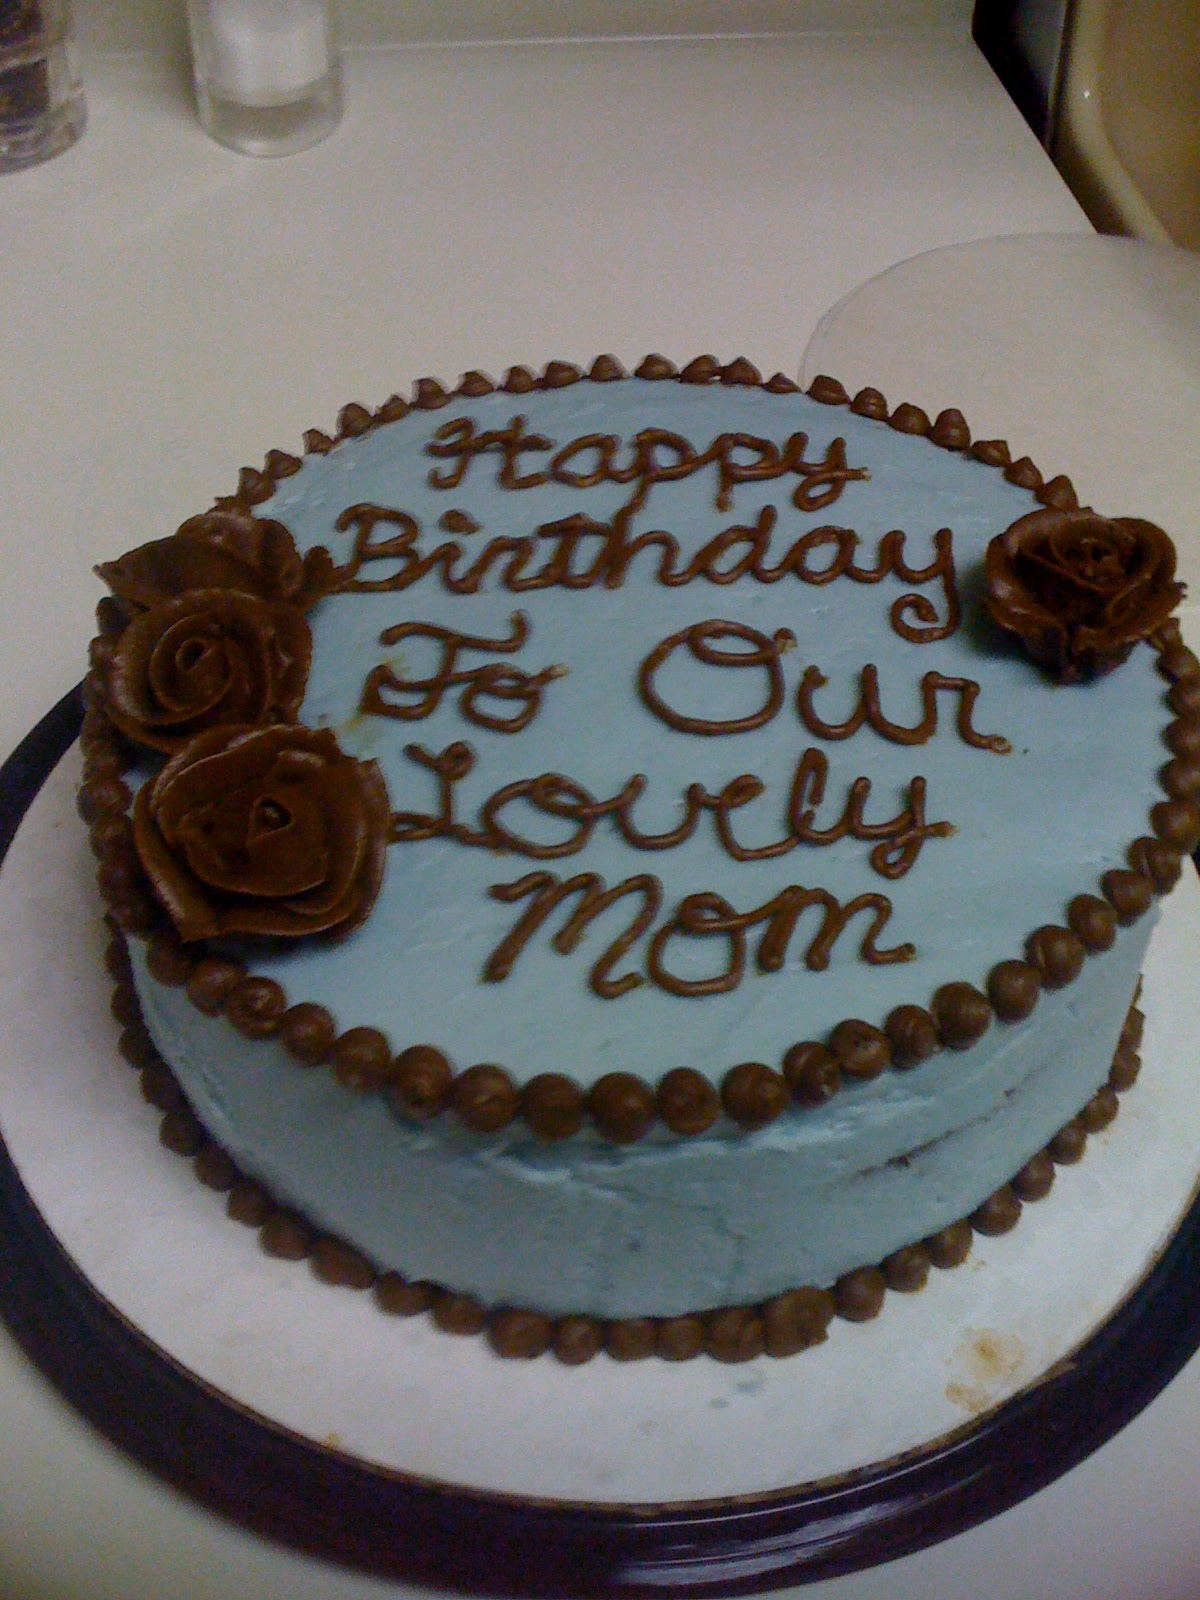 Birthday Pastry Cake Images Download : Pastry Shells: Simple and Elegant Birthday Cake